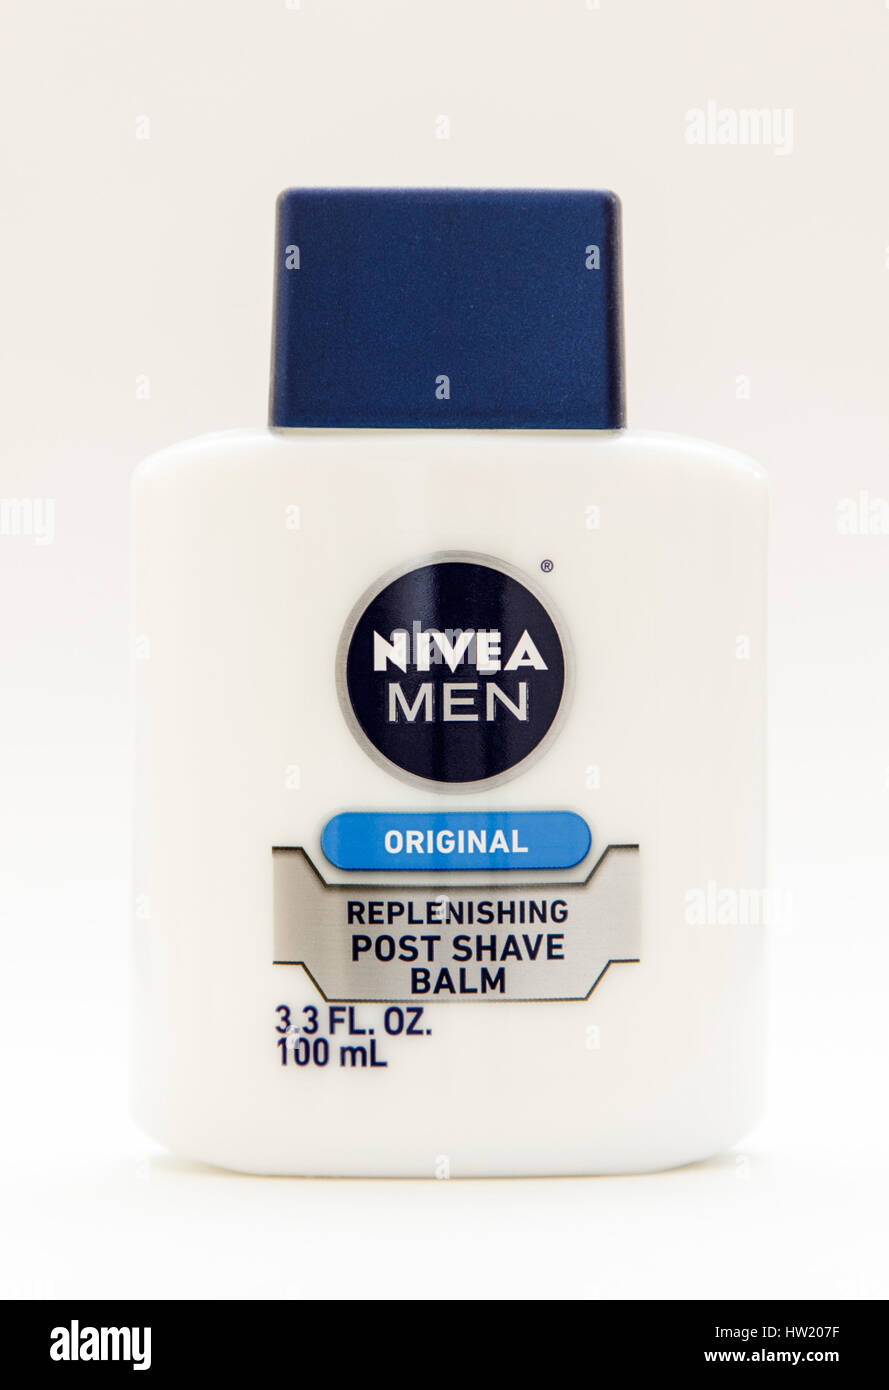 Bottle of Nivea post shave balm stands against white background. - Stock Image